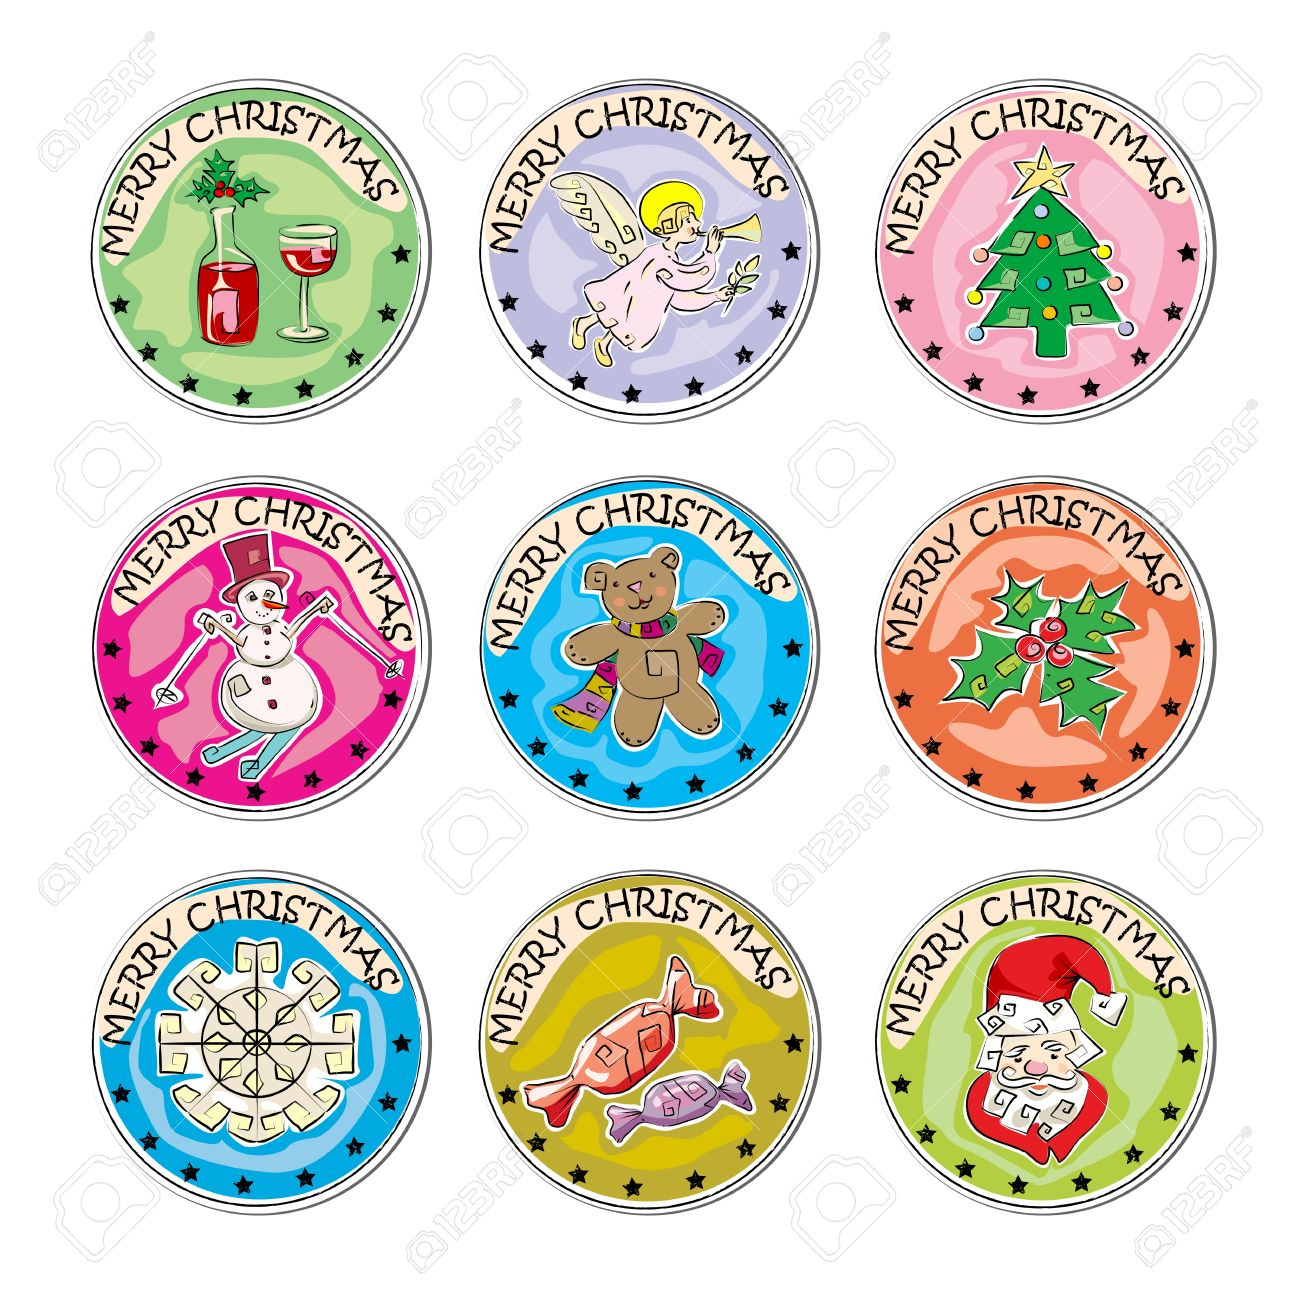 Merry Christmas Set Of Colored Clip Art Stamp Coins, Stickers ...